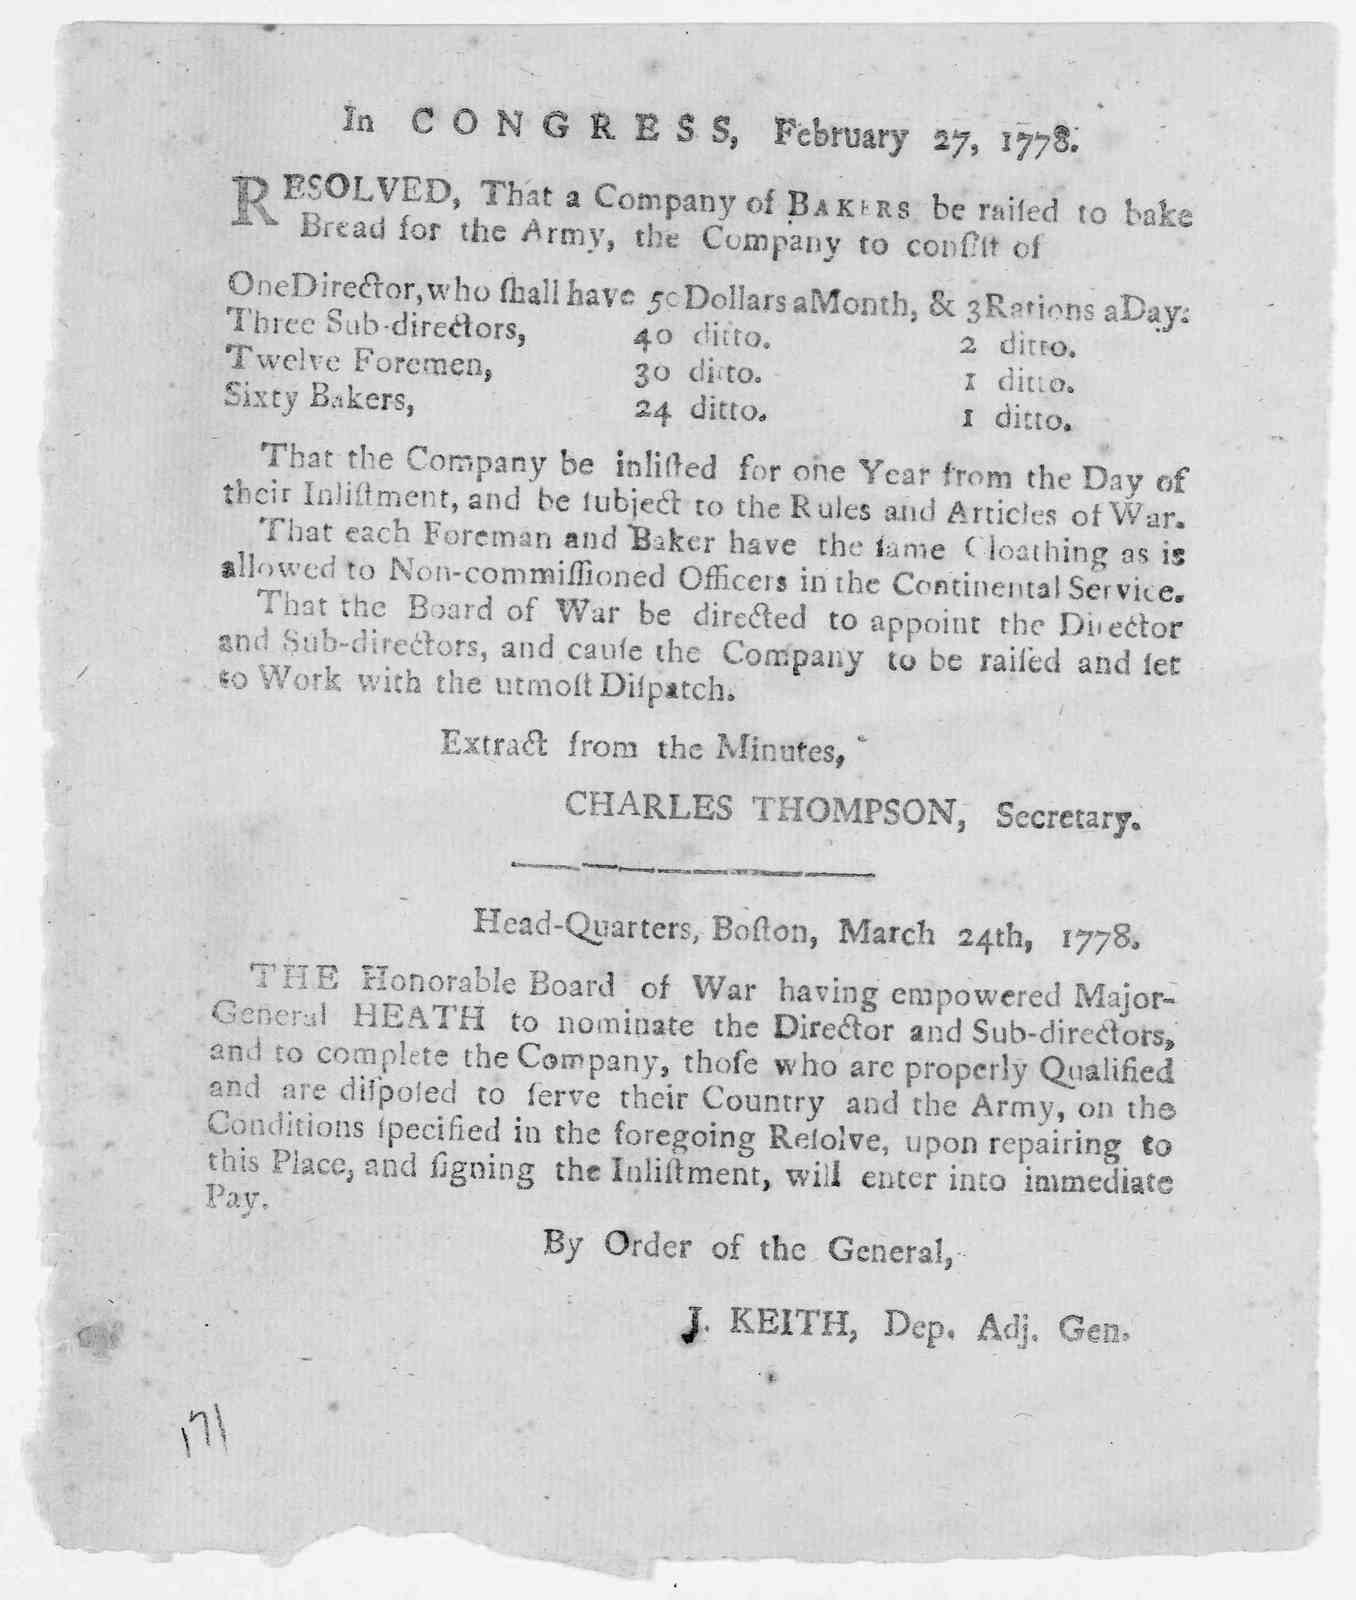 In Congress, February 27, 1778. Resolved that a company of bakers be raised to bake bread for the army, the company to consist of one director ... three sub-directors ... twelve foremen ... sixty bakers ...That the company be inlisted for one ye